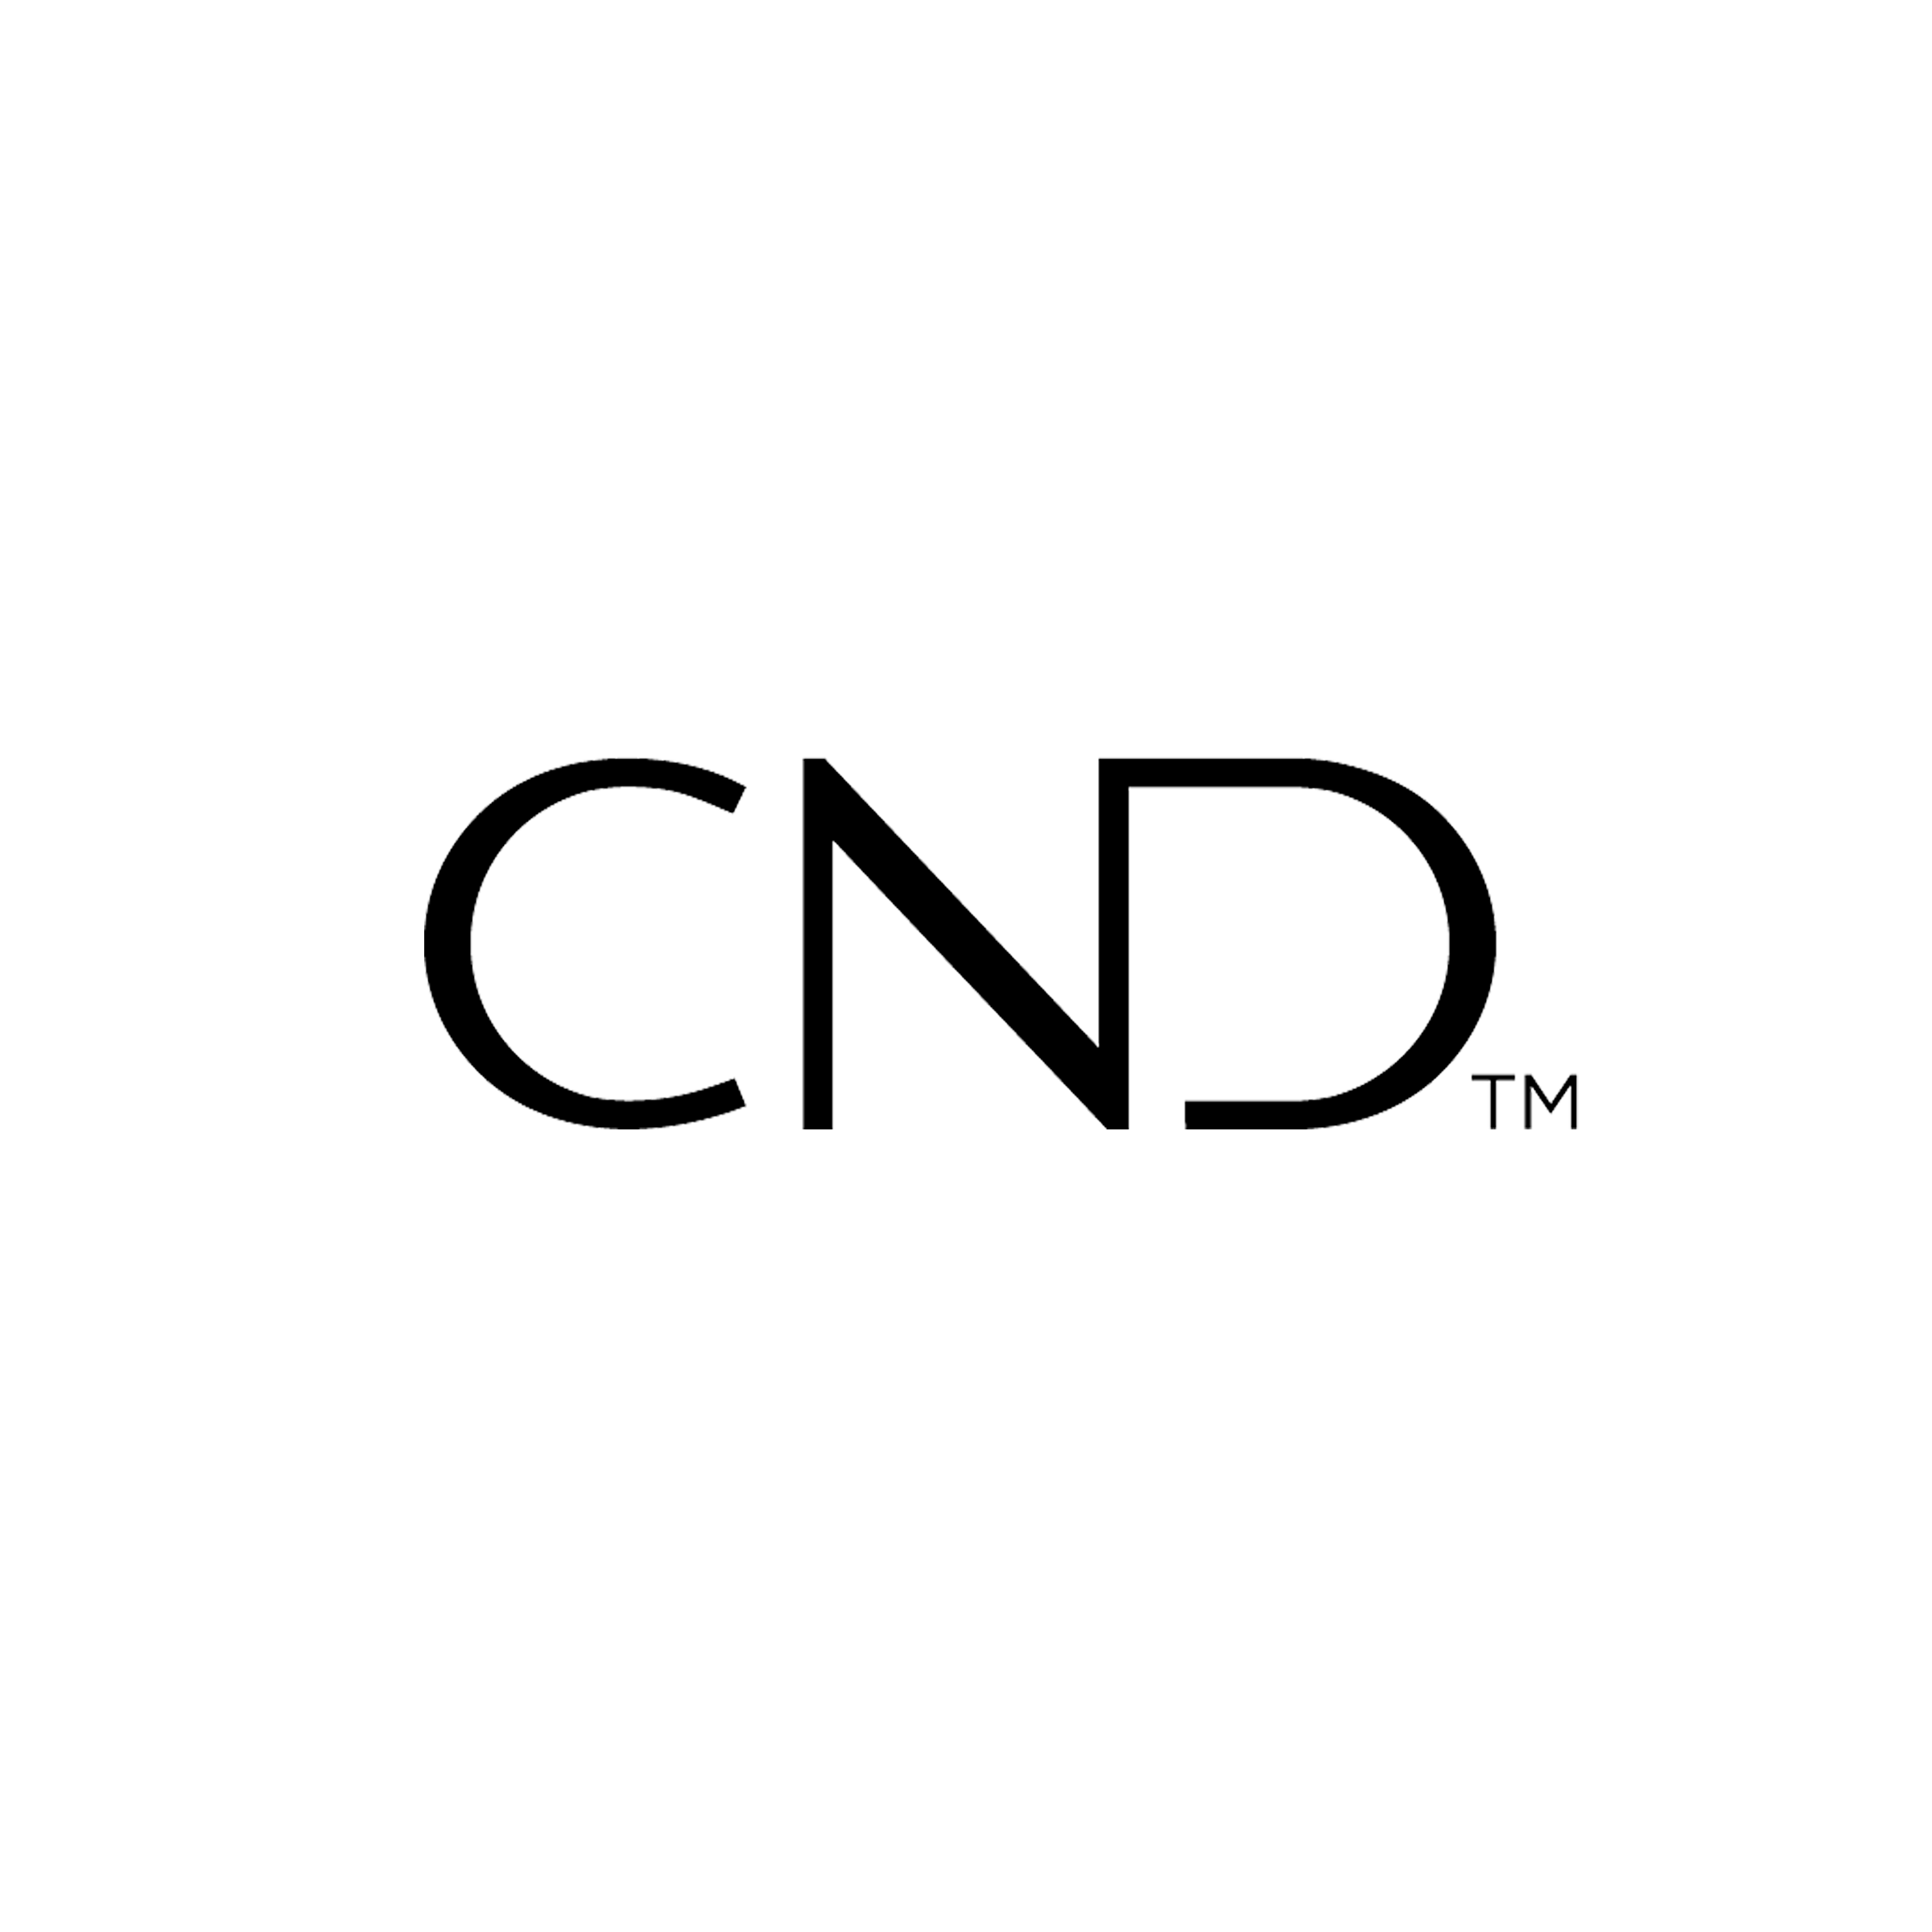 cnd-square.png